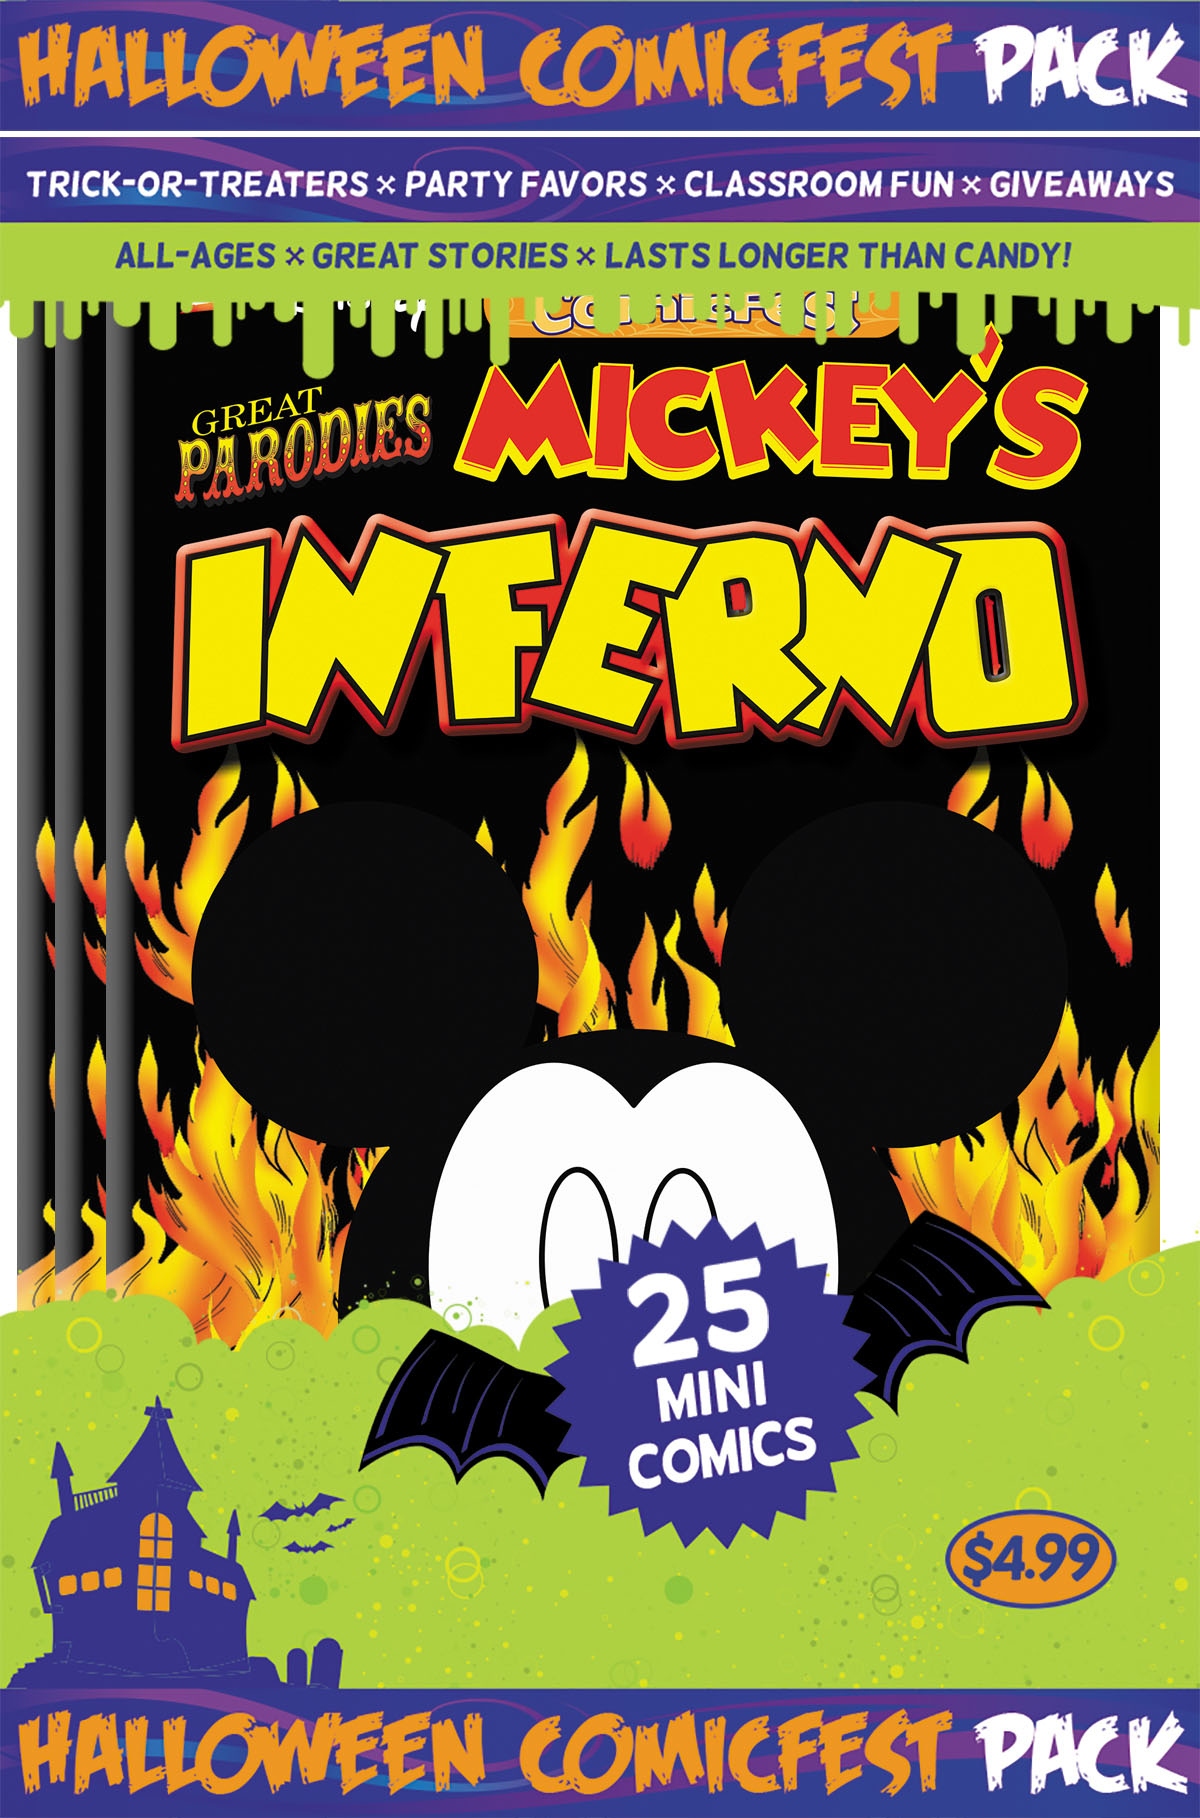 HCF 2016 MICKEYS INFERNO MINI COMIC POLYPACK